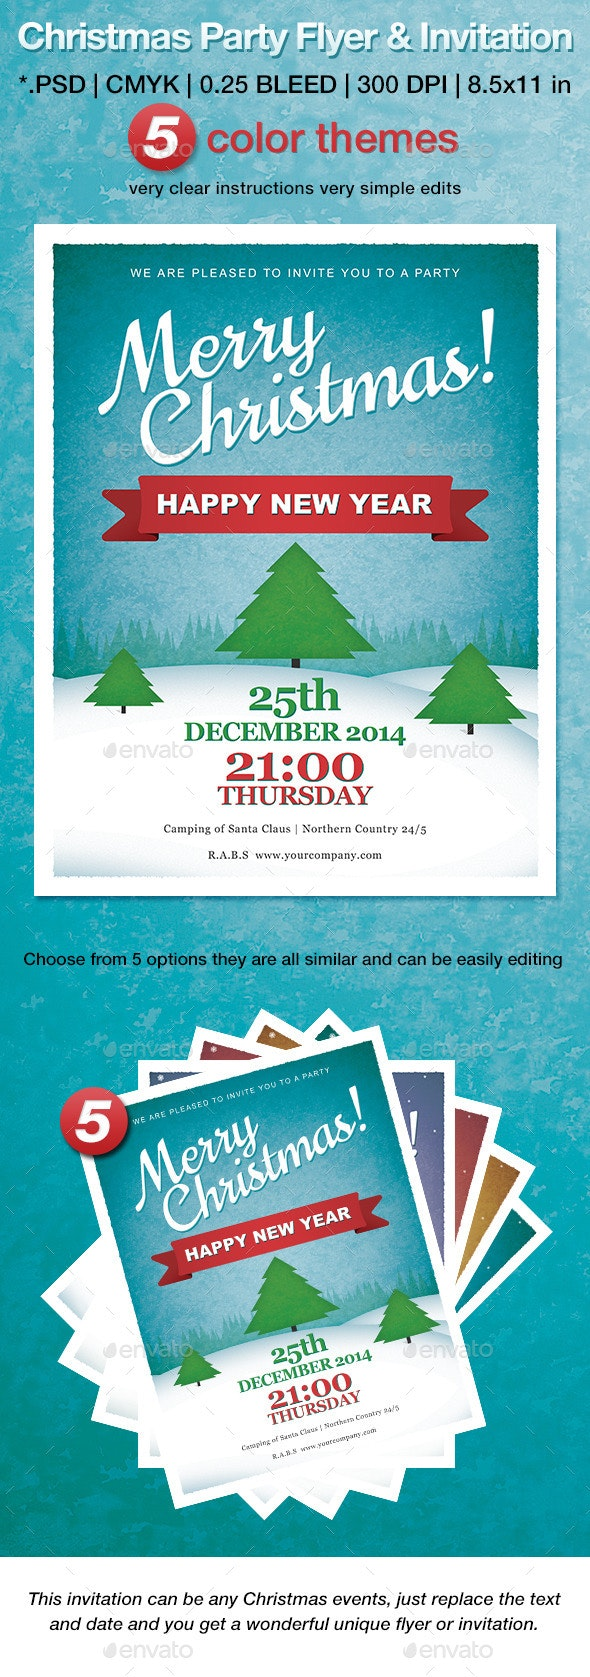 Christmas Party Flyer & Invitation - Print Templates